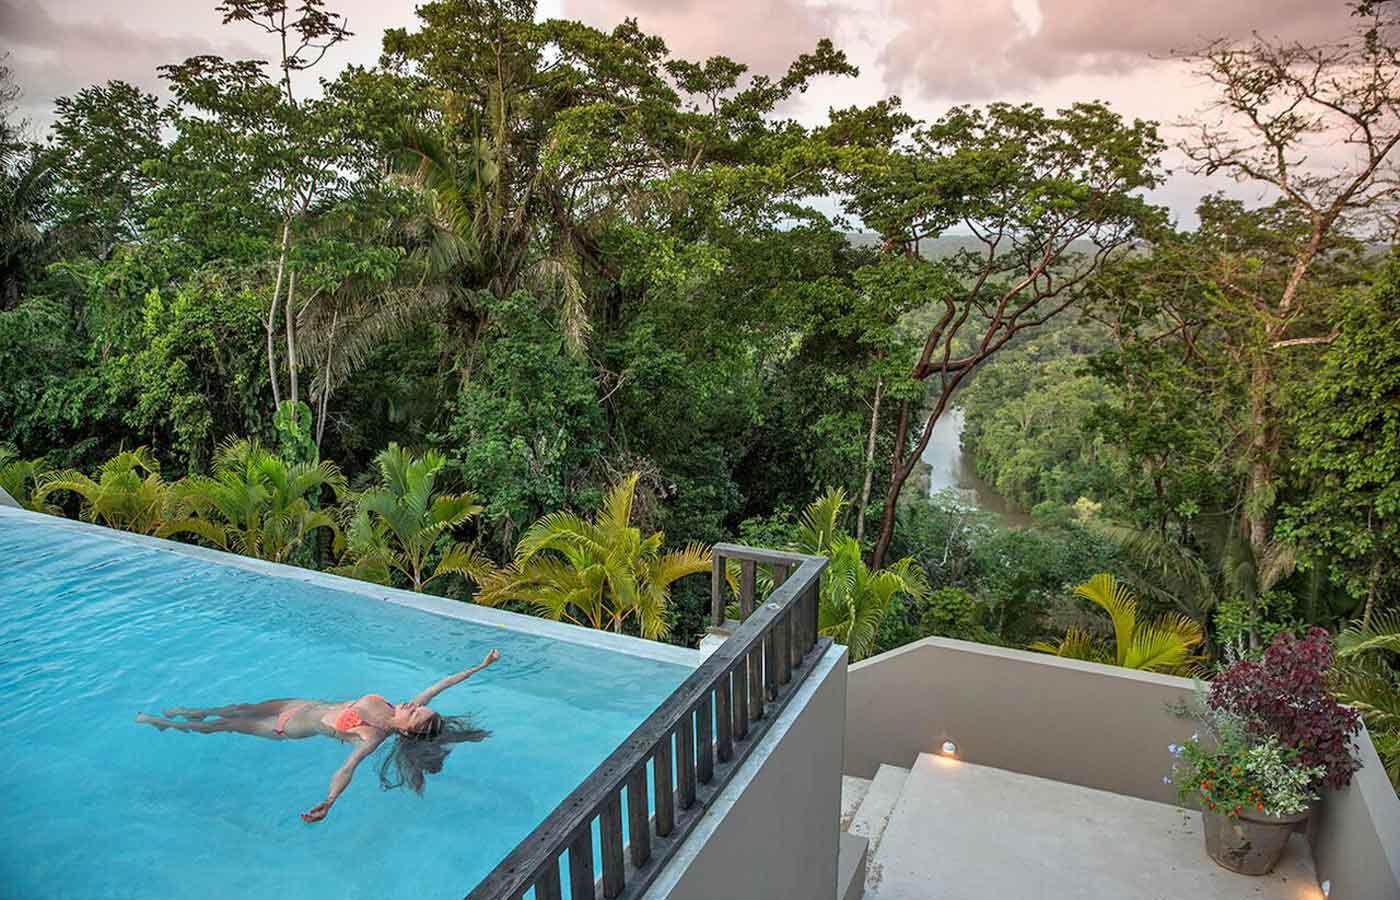 Copal Tree Lodge, Belize, luxury Belize, luxury holidays to Beluze, tailor-made holidays to Belize, Belize luxury holidays